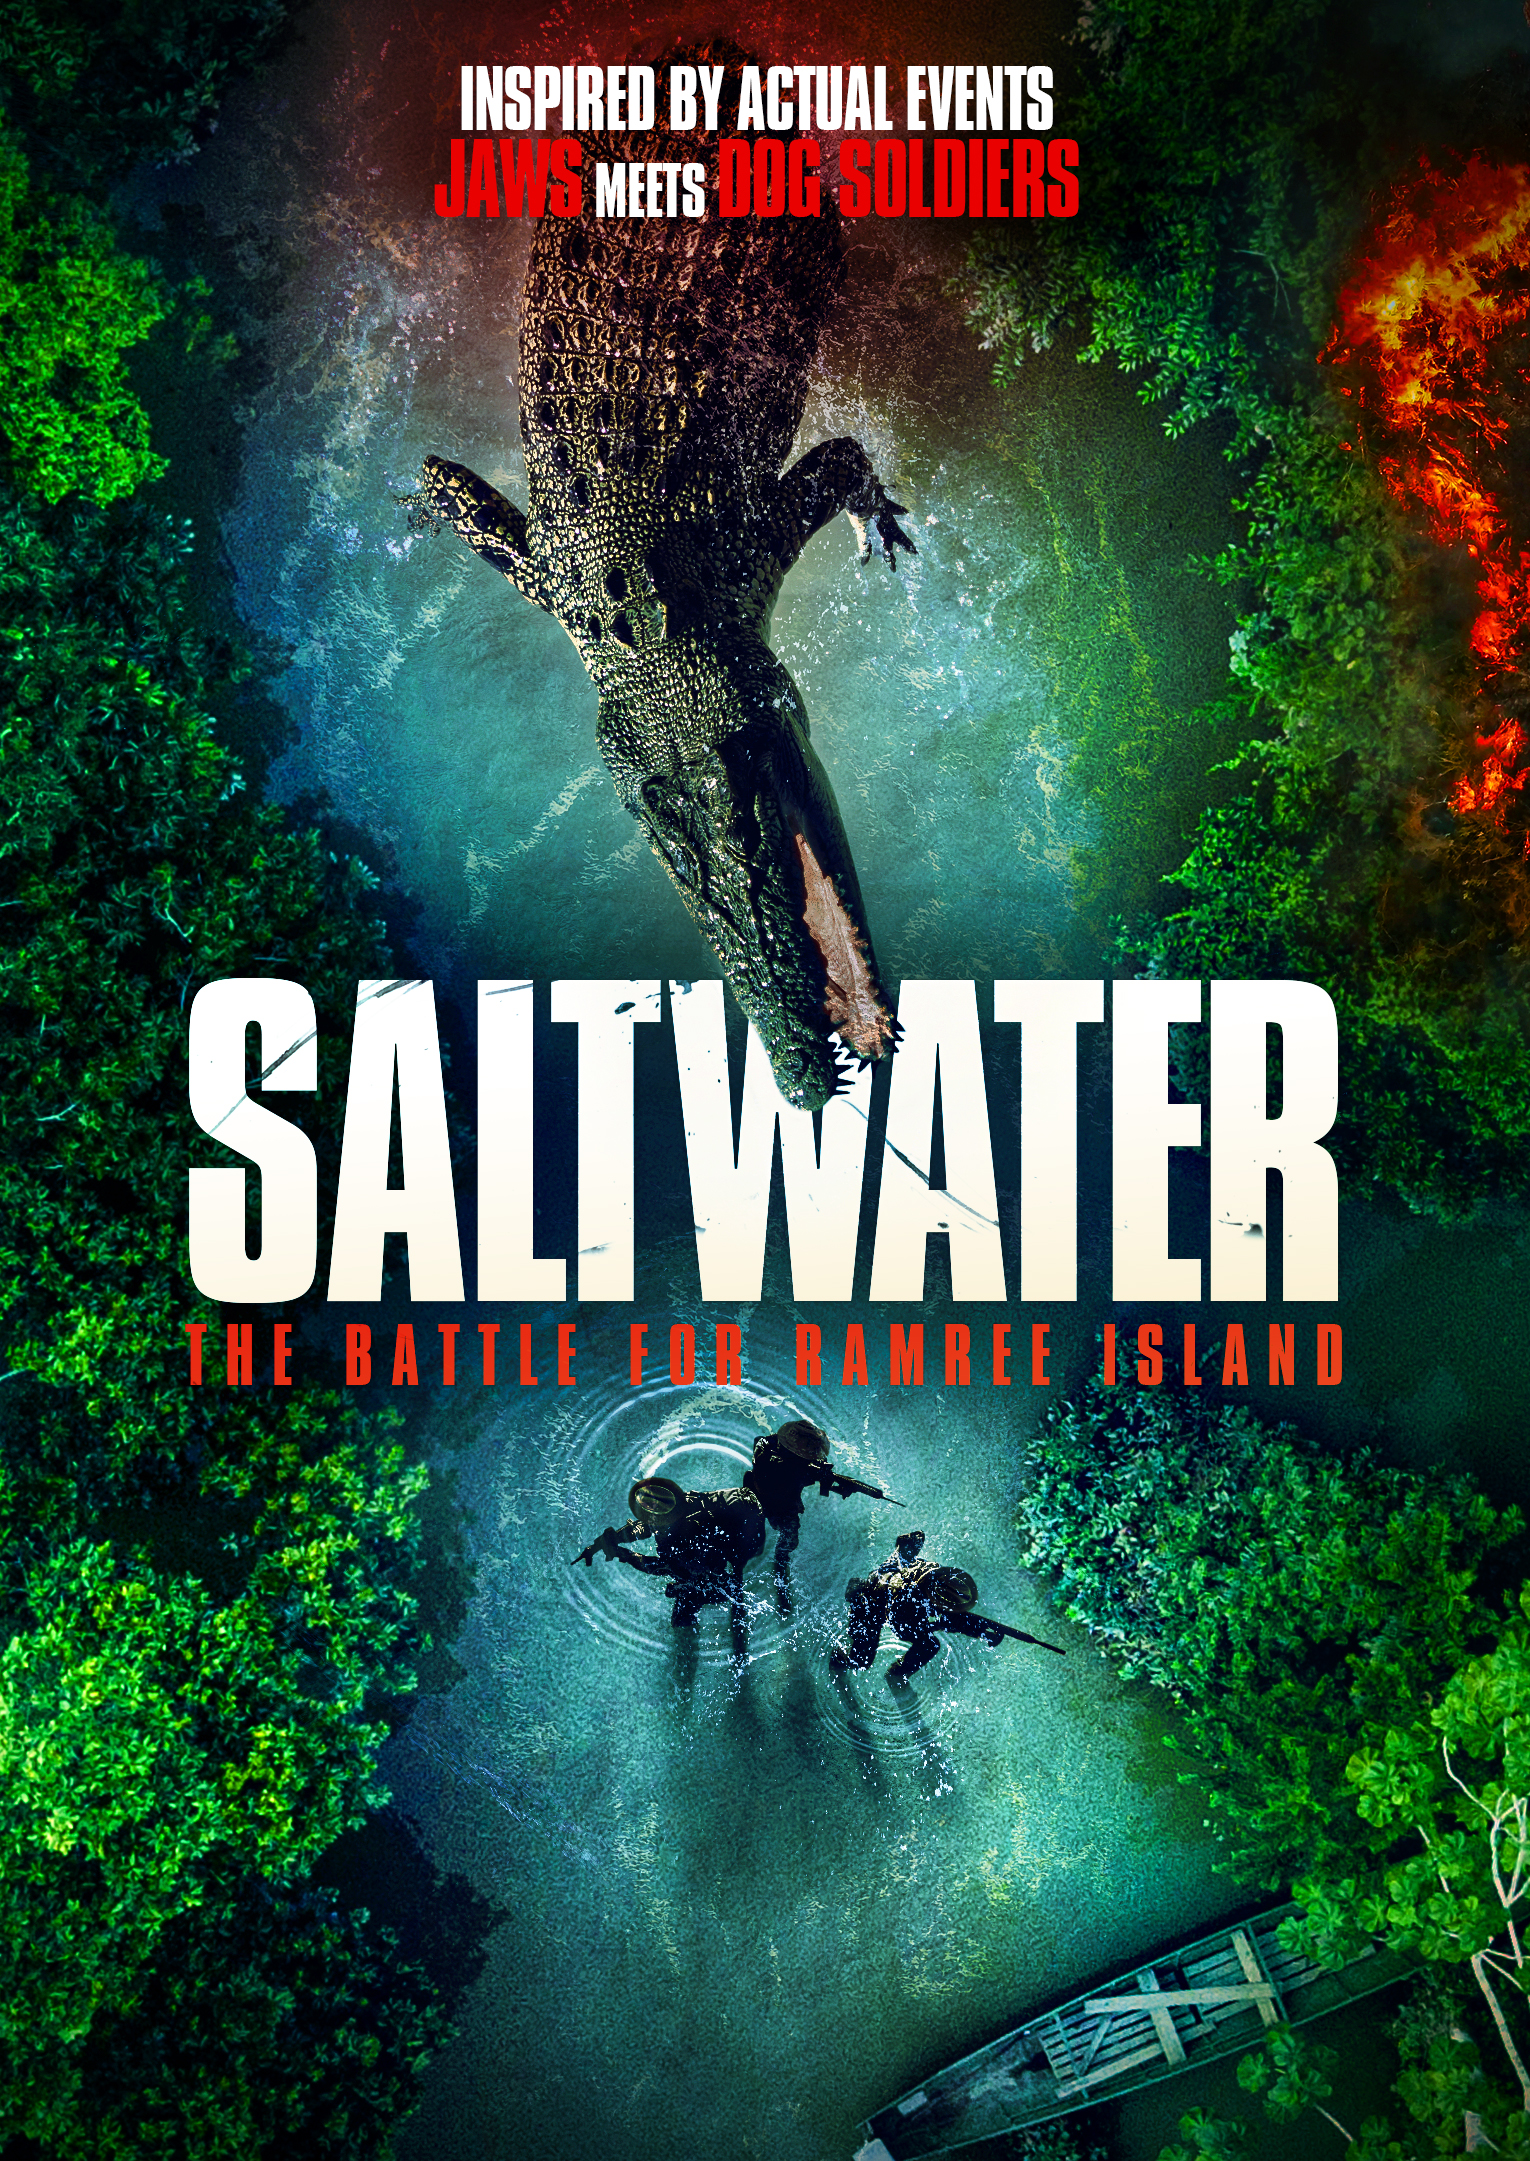 watch Saltwater: The Battle for Ramree Island on soap2day